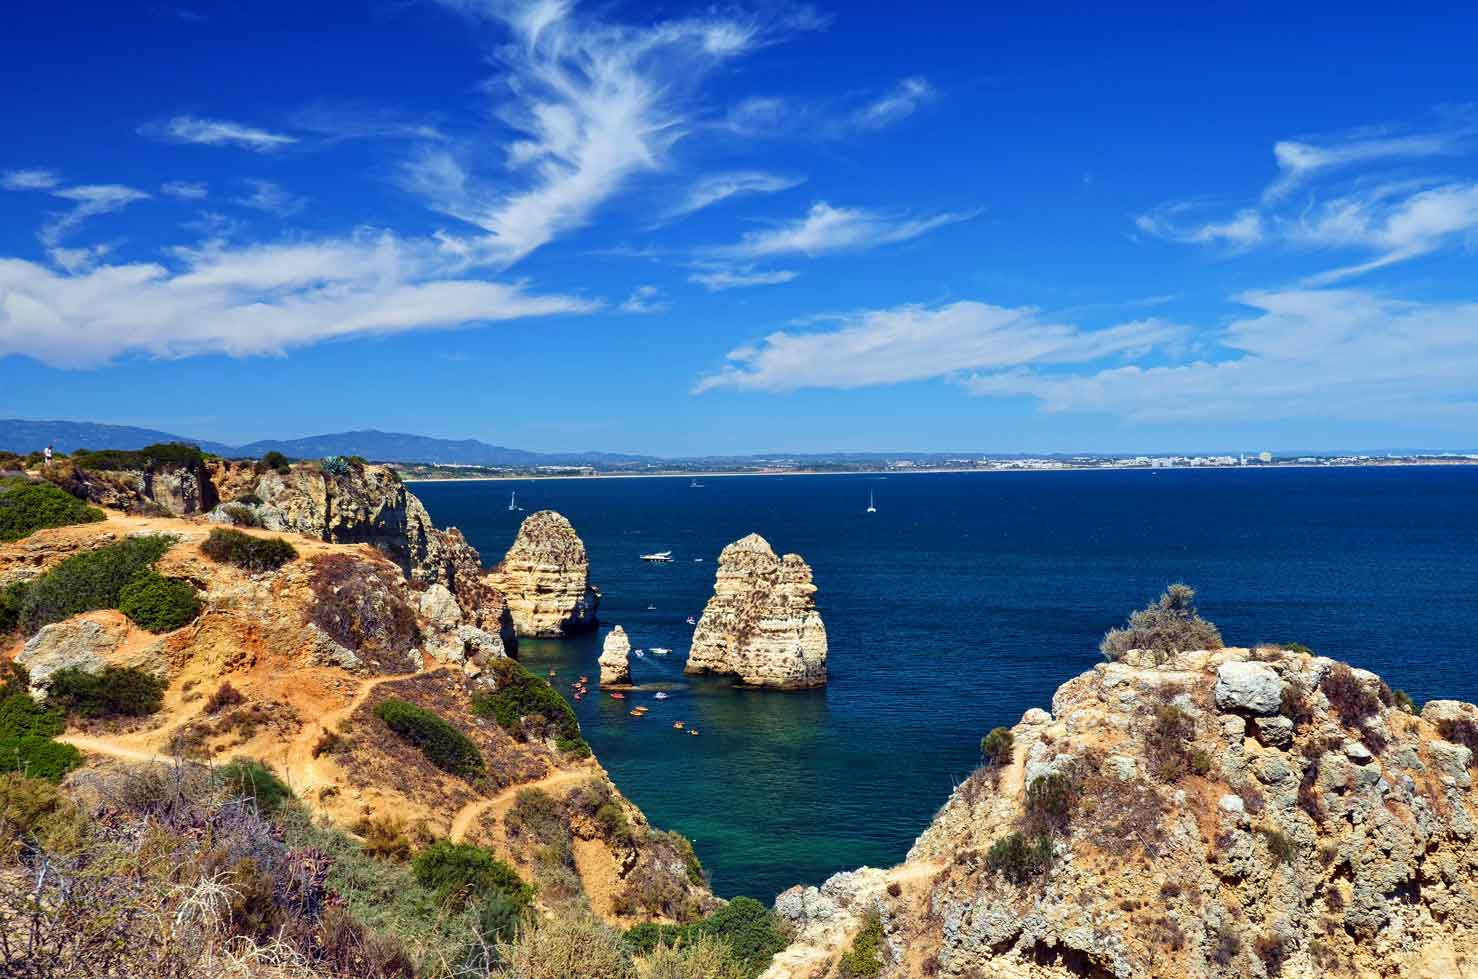 Ponta de Piedade is the most beautiful spot in the Algarve!